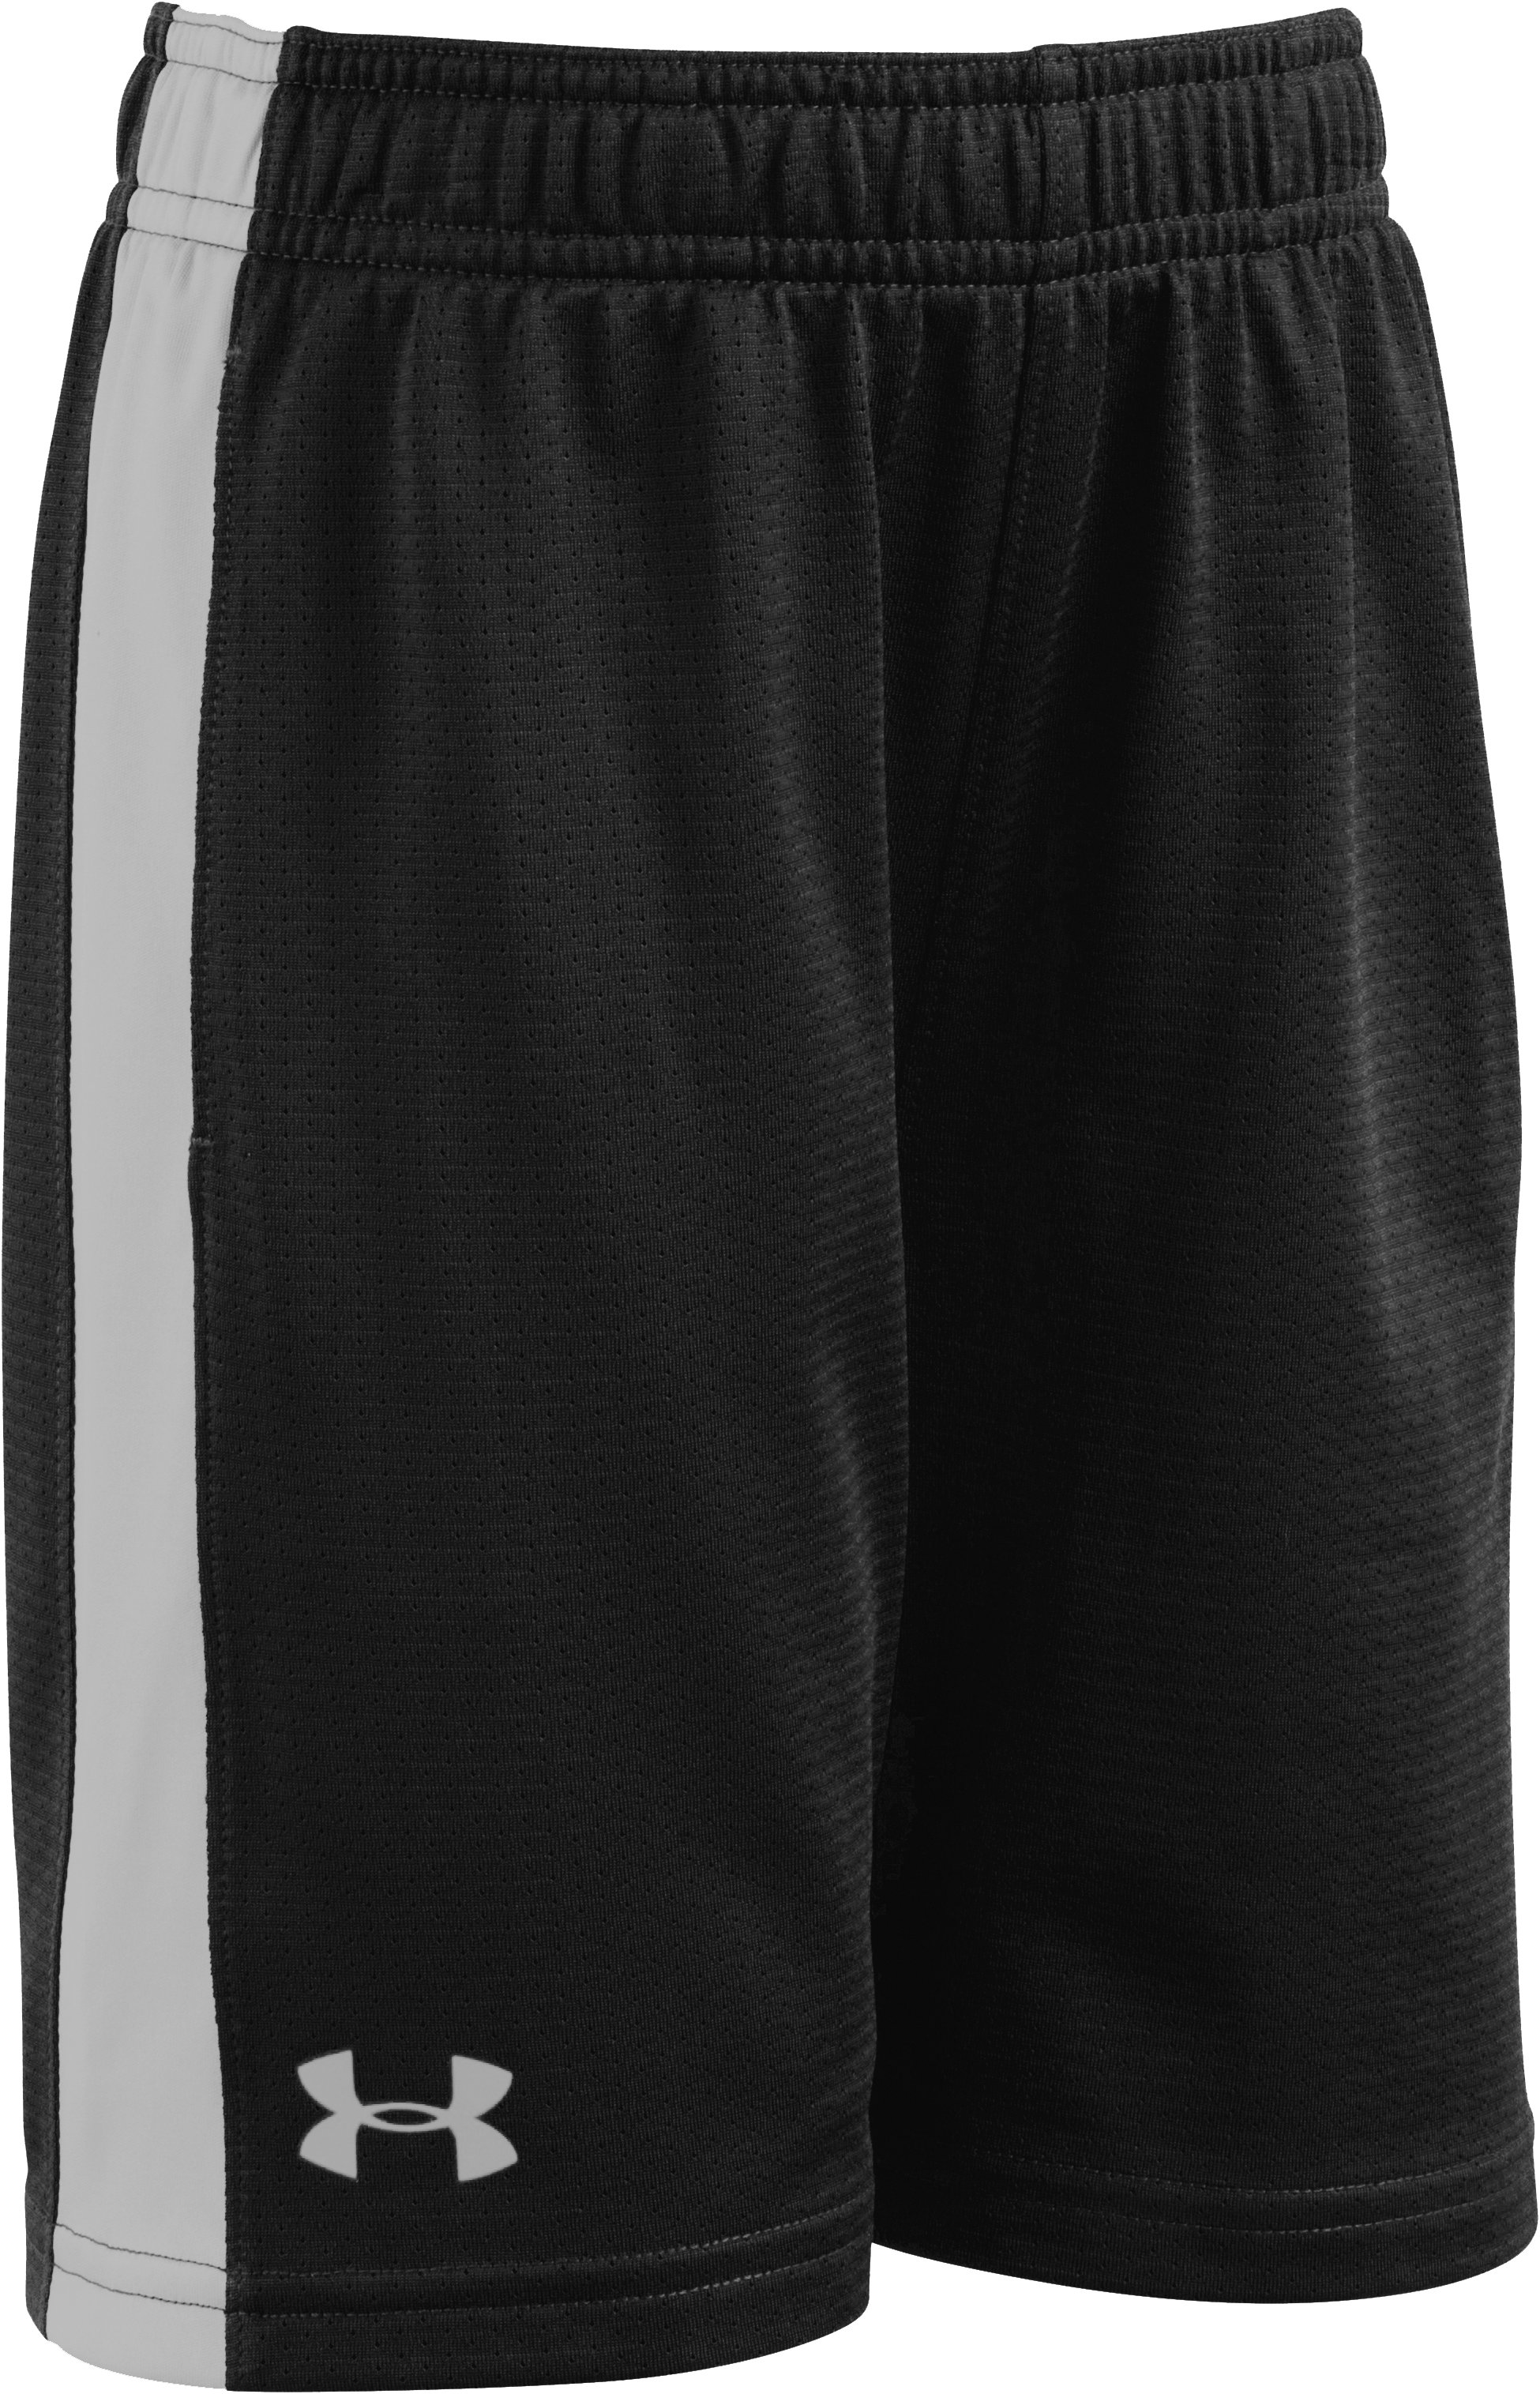 Boys' Toddler UA Mesh Eliminator Shorts, Black , zoomed image